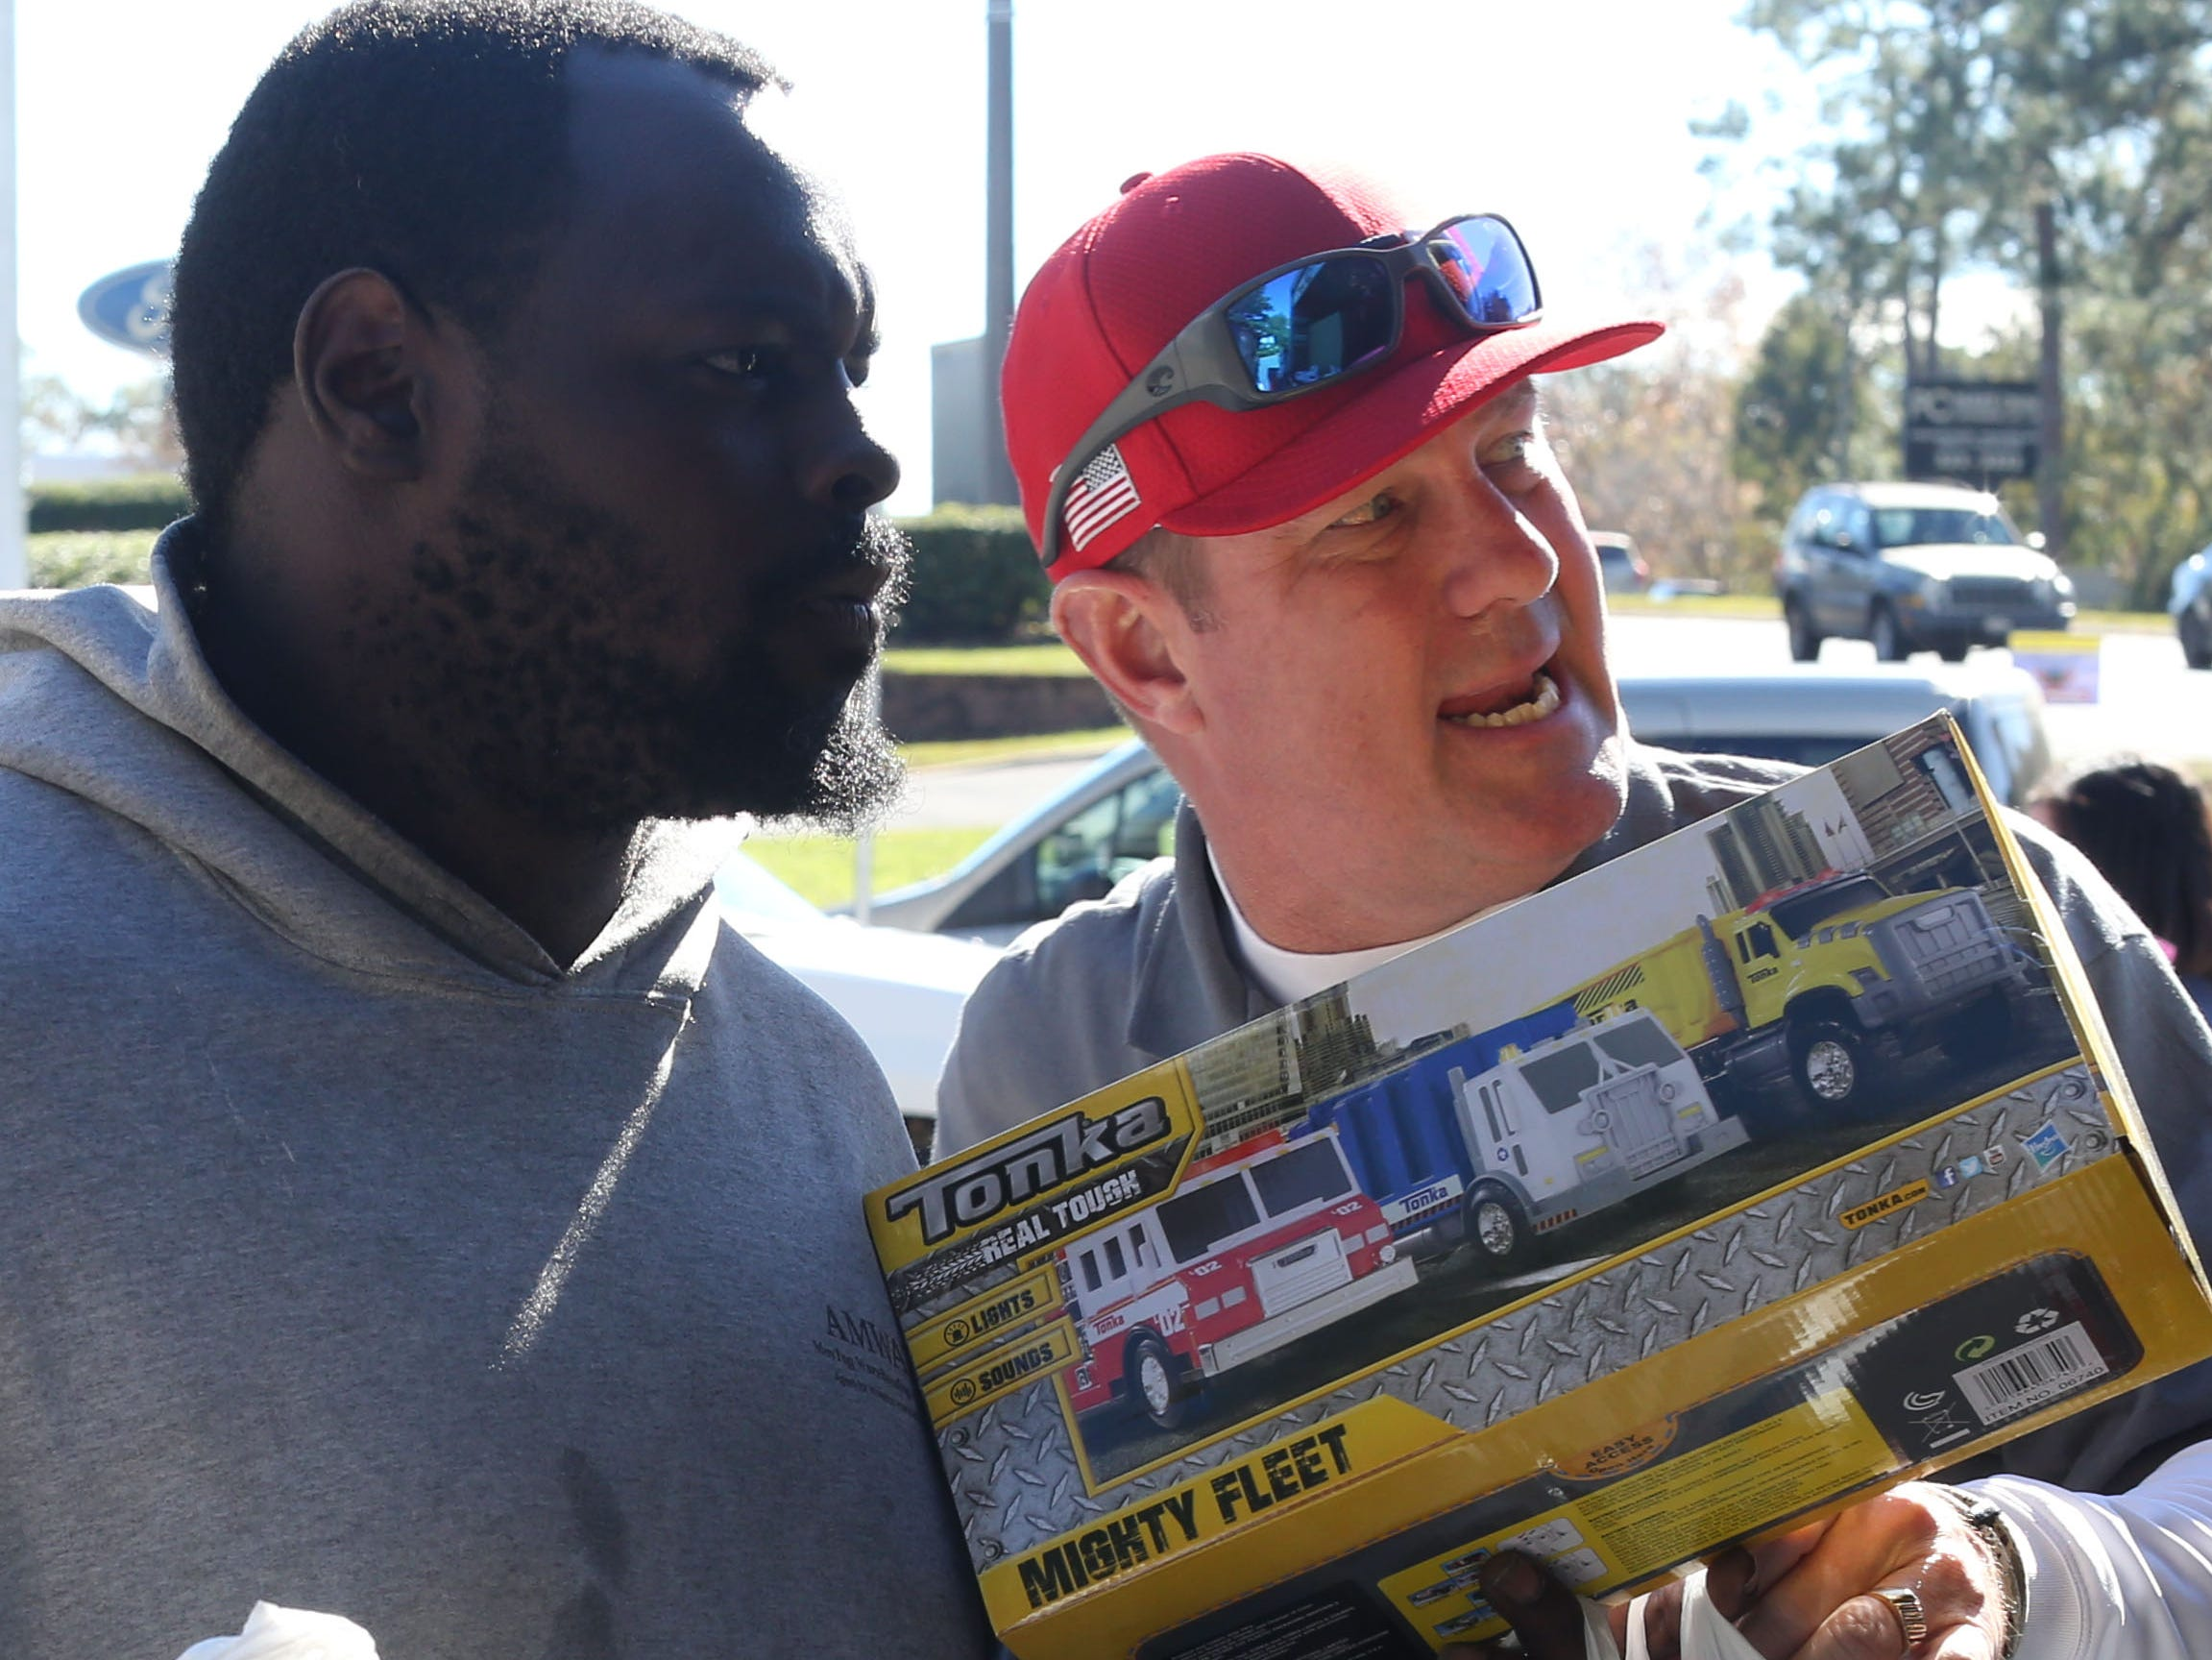 Frank Grims, warehouse manager at A.M.W.A.T. Moving and Warehouse, left, and Dean Pugh, owner of A.M.W.A.T. Moving and Warehouse, load toys into a moving truck for the toy drive for children impacted by Hurricane Michael hosted by Rebuild 850 outside of the Tallahassee Democrat, Thursday, Dec. 6, 2018.